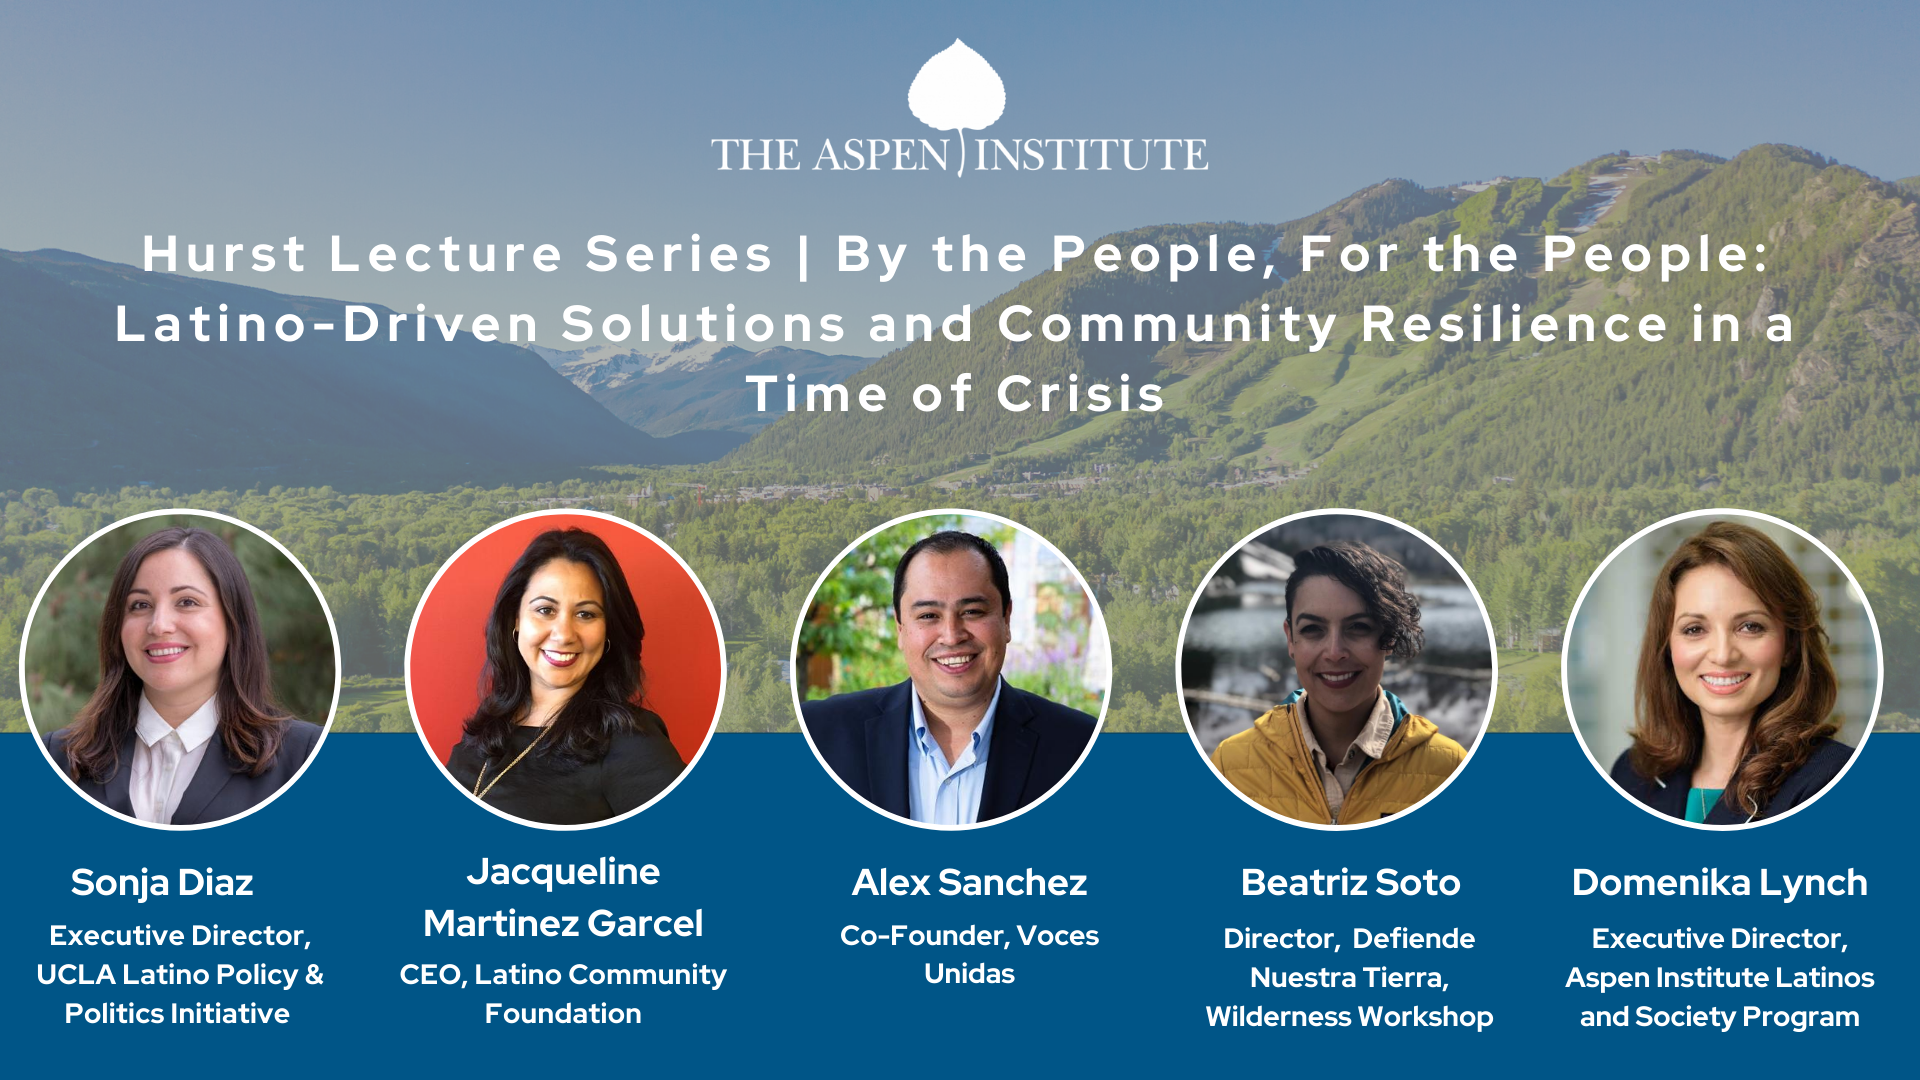 Latino-Driven Solutions and Community Resilience in a Time of Crisis